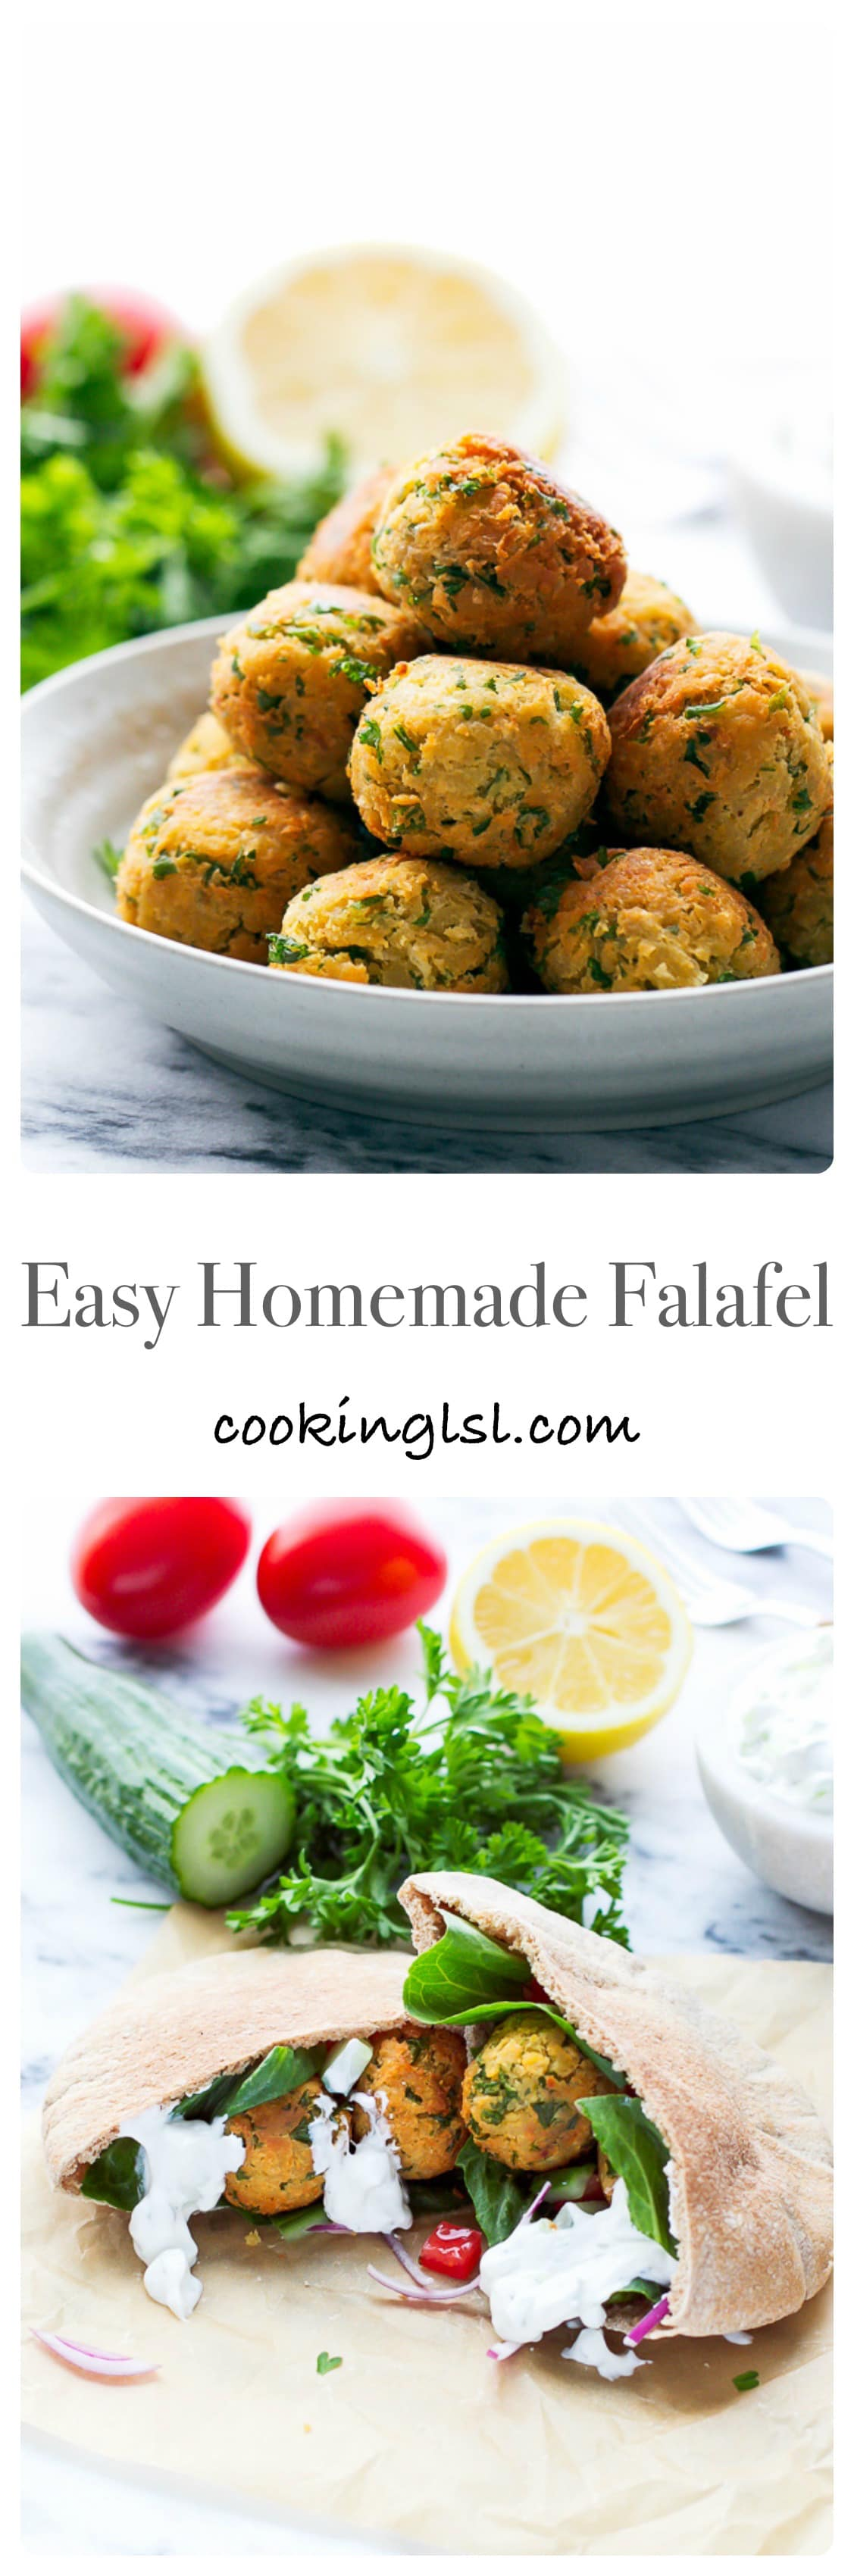 easy-homemade-falafel-recipe